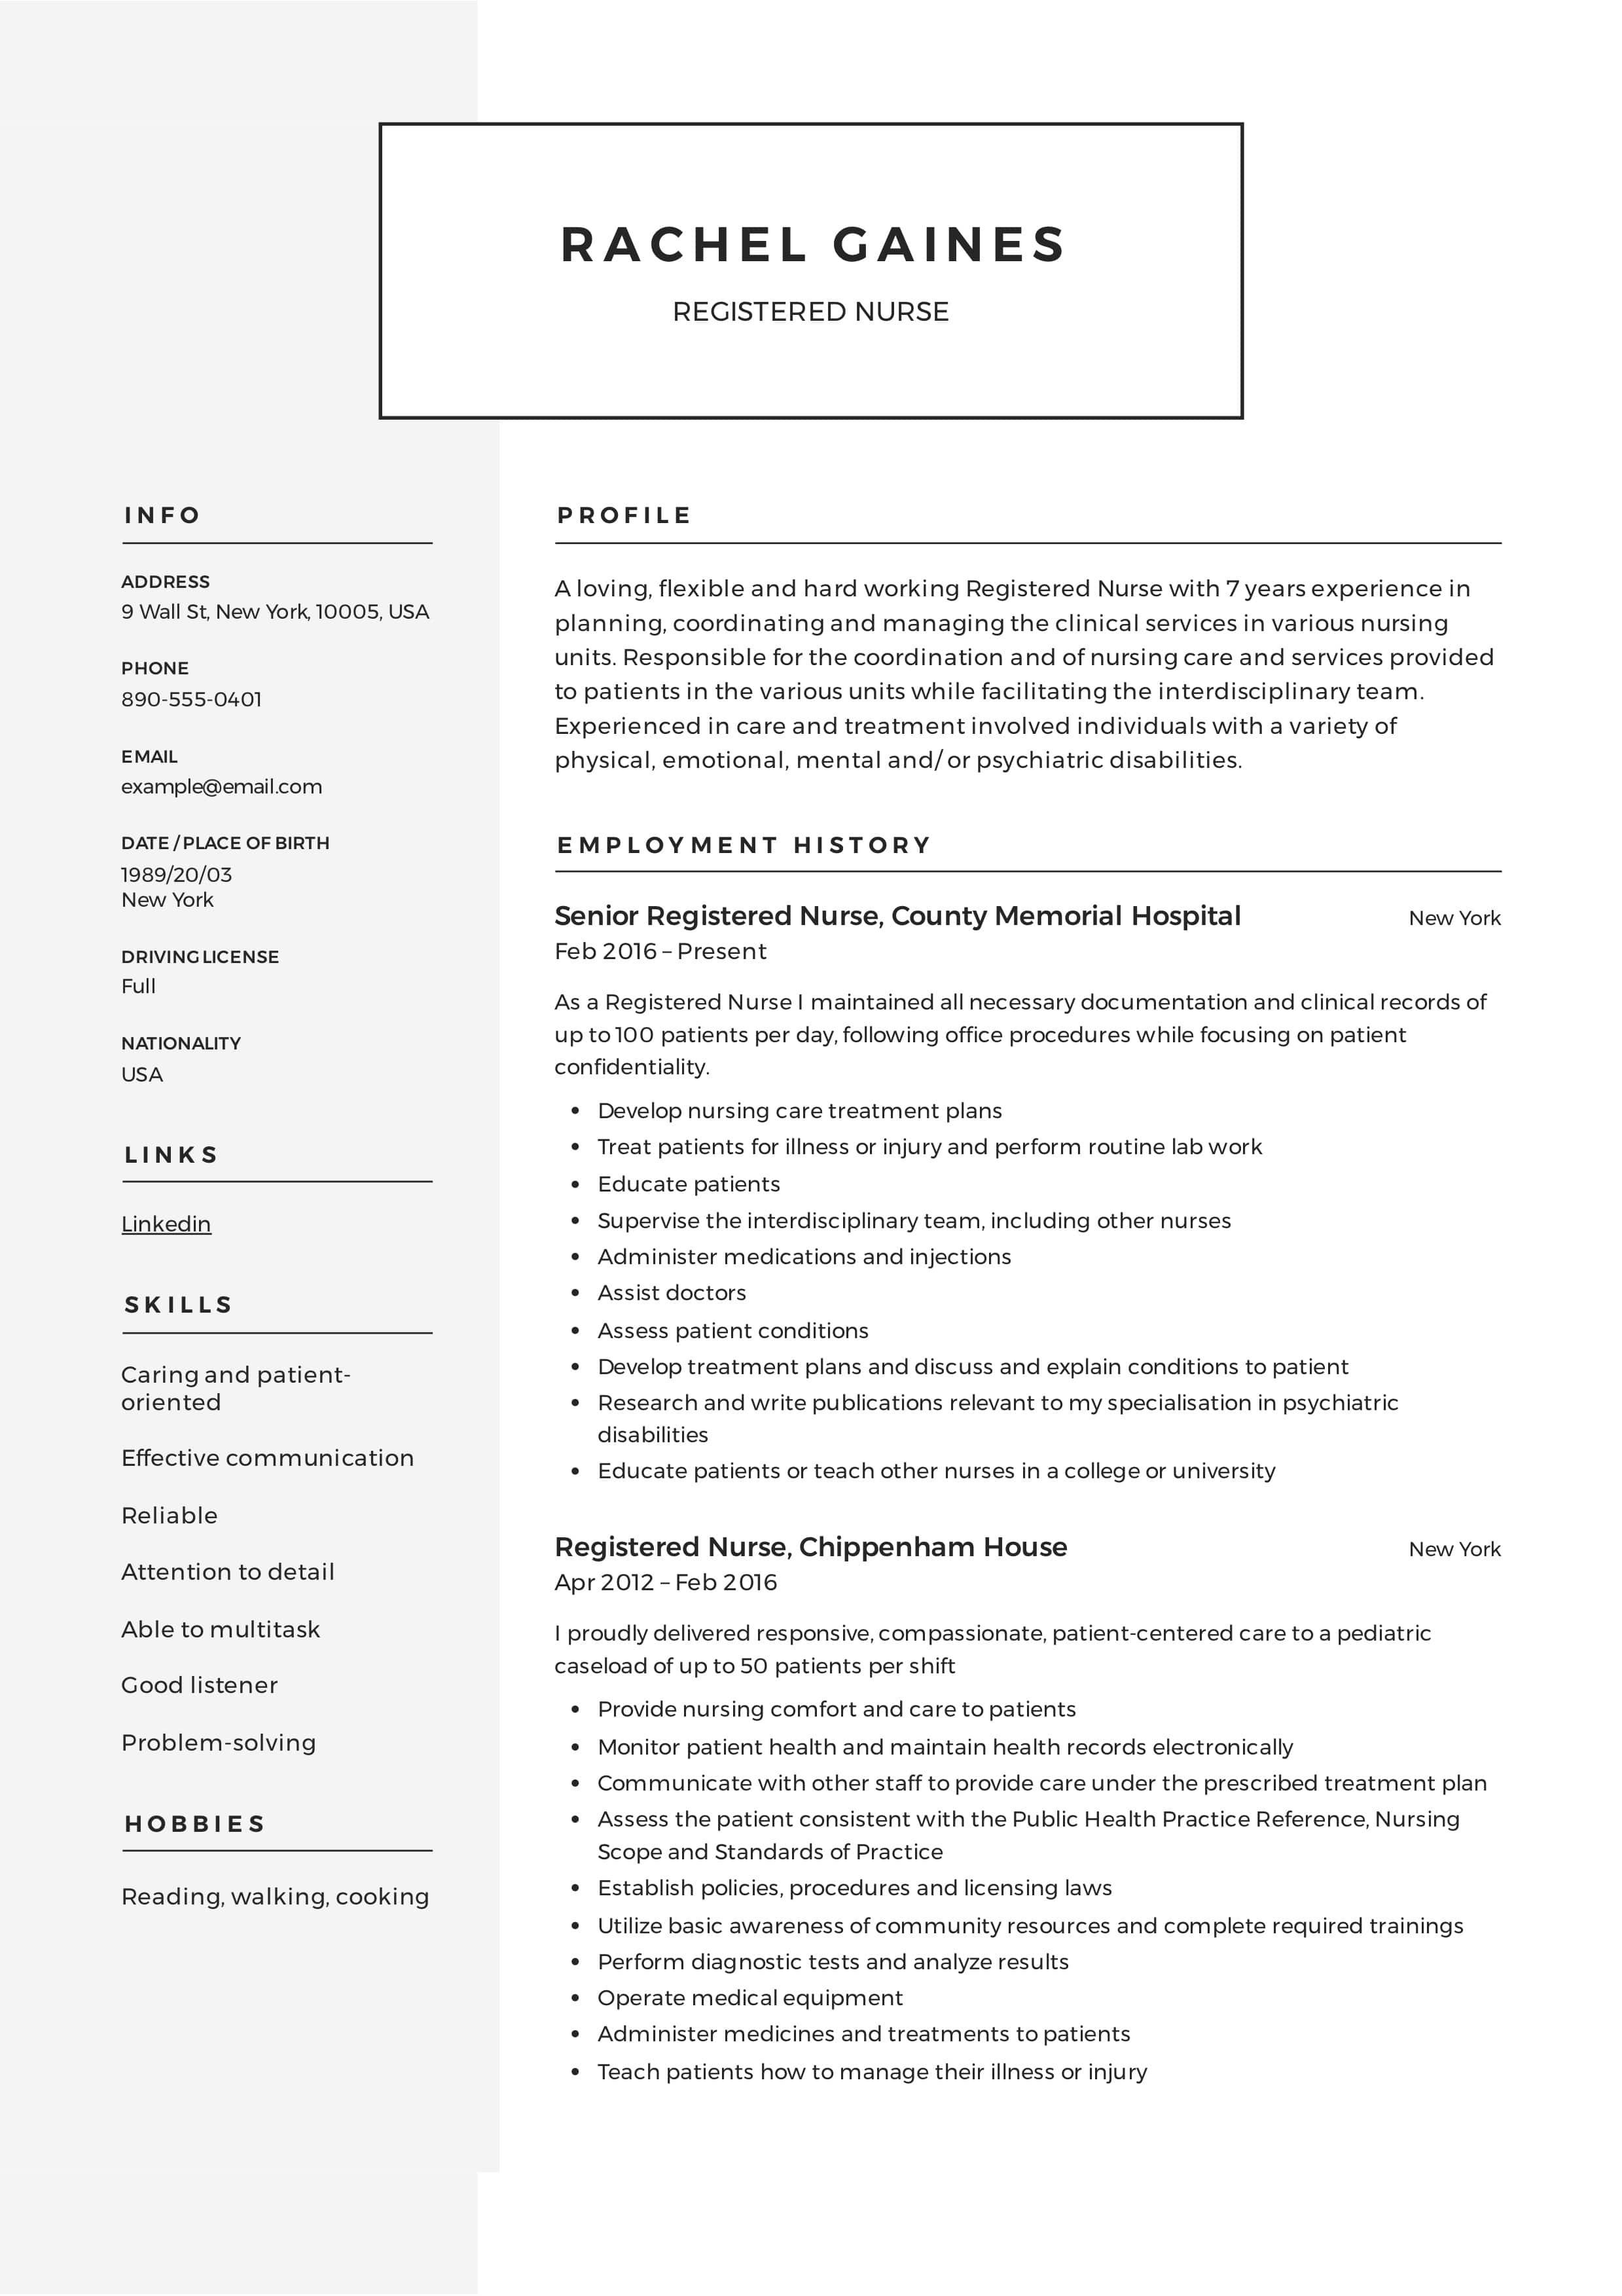 008 Incredible Nurse Resume Template Word Picture  Cv Free Download RnFull